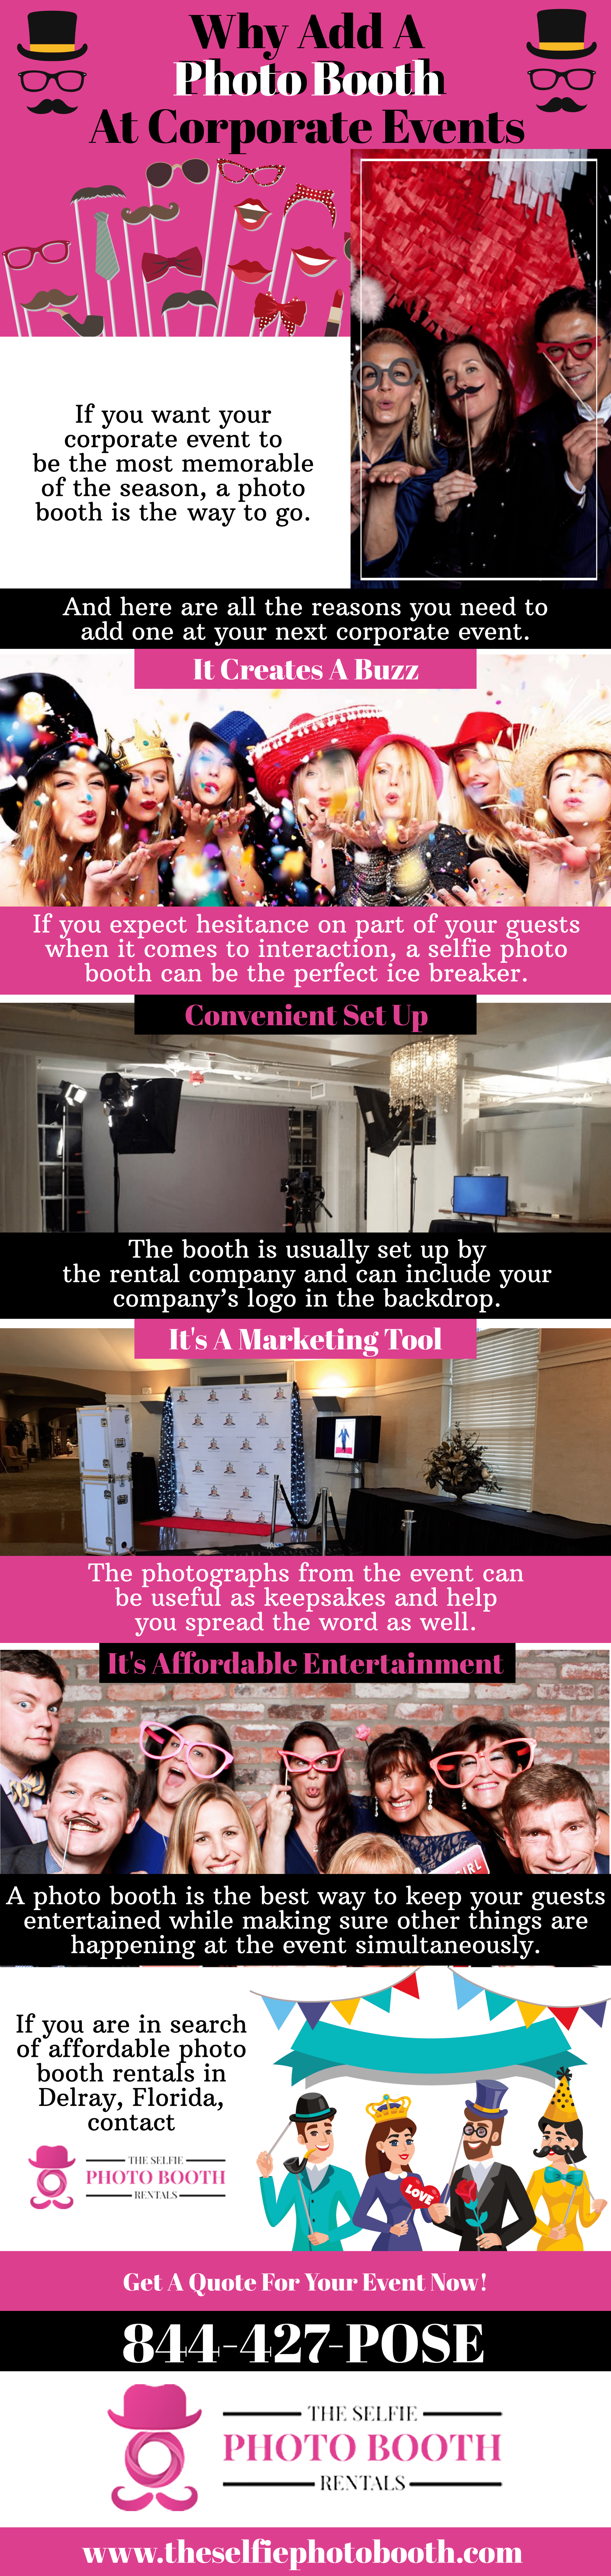 Why Add a Photo Booth At Corporate Events